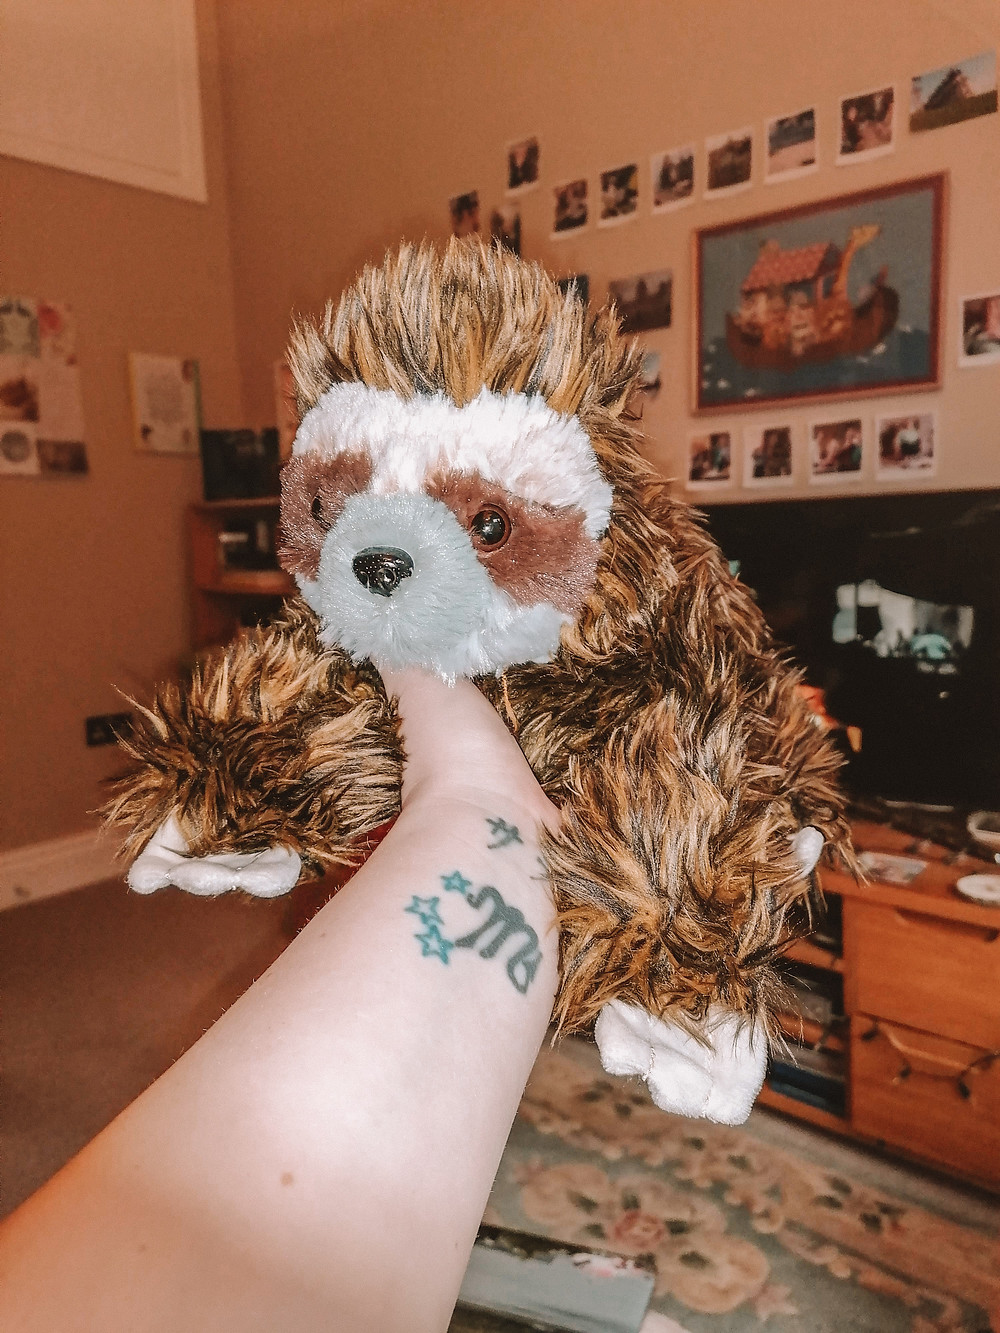 Sarah holding up a stuffed sloth toy